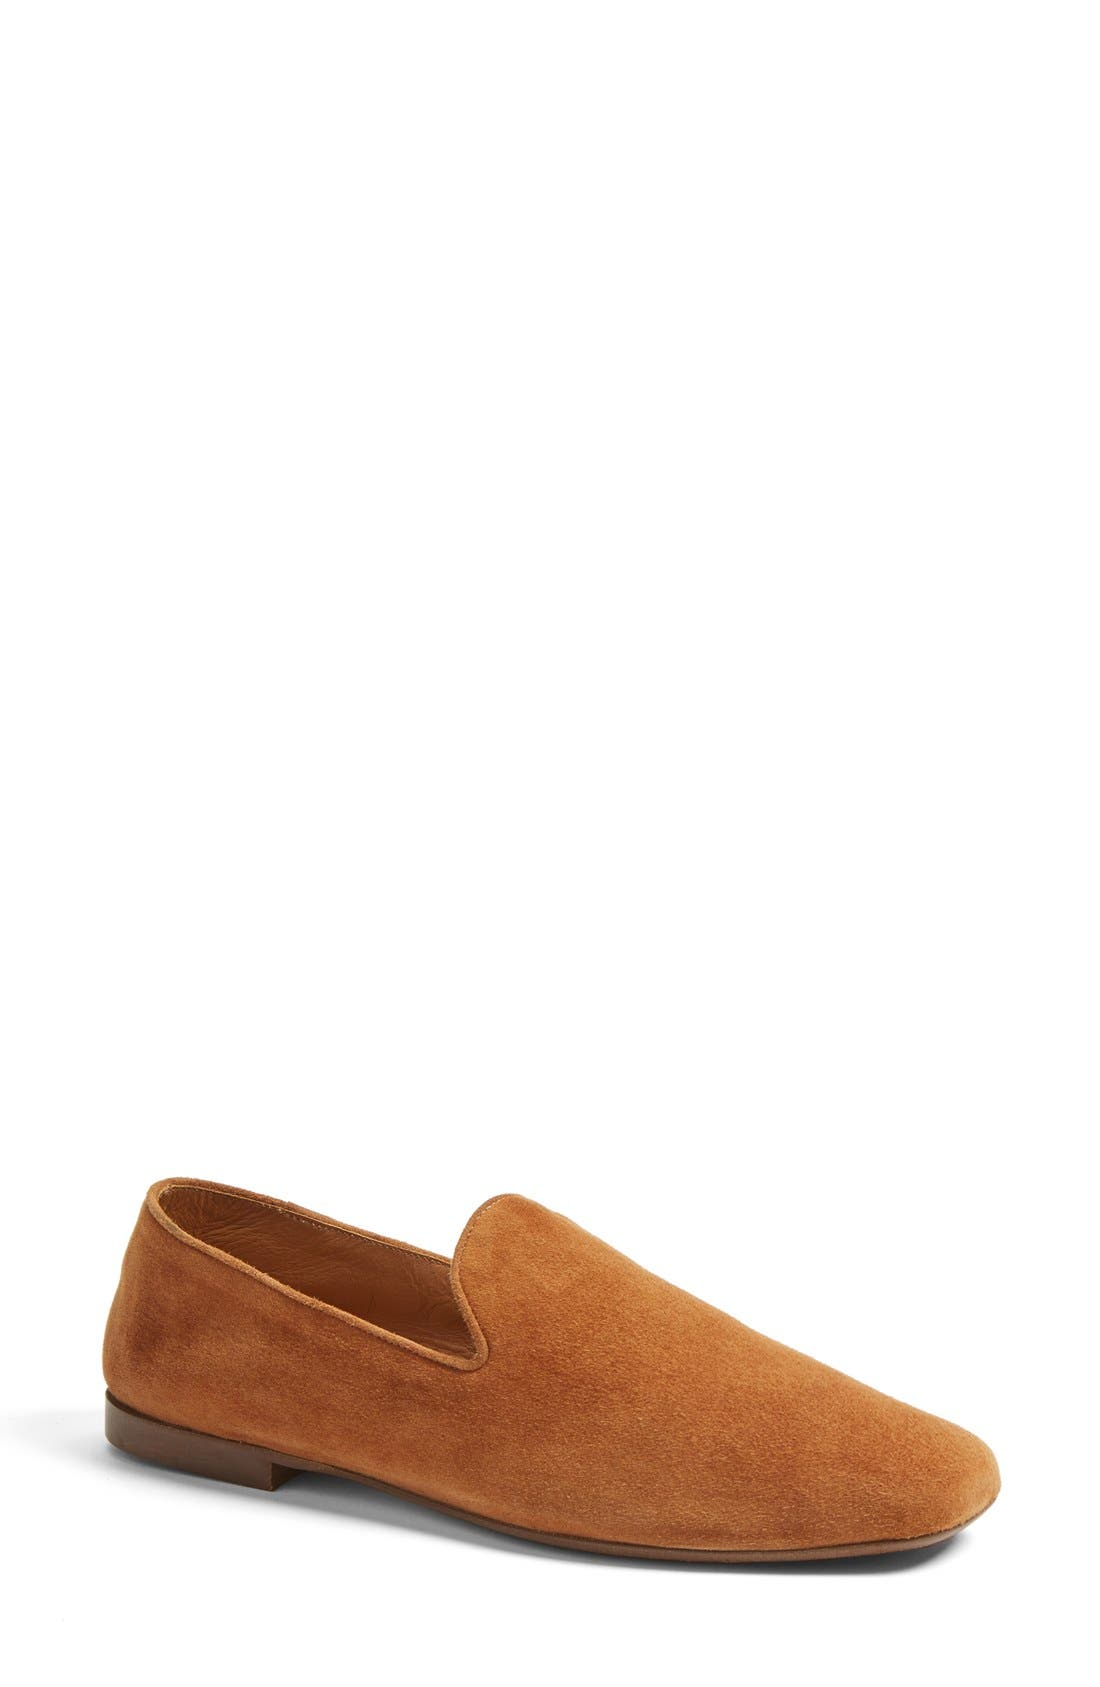 'Bray' Loafer,                             Main thumbnail 8, color,